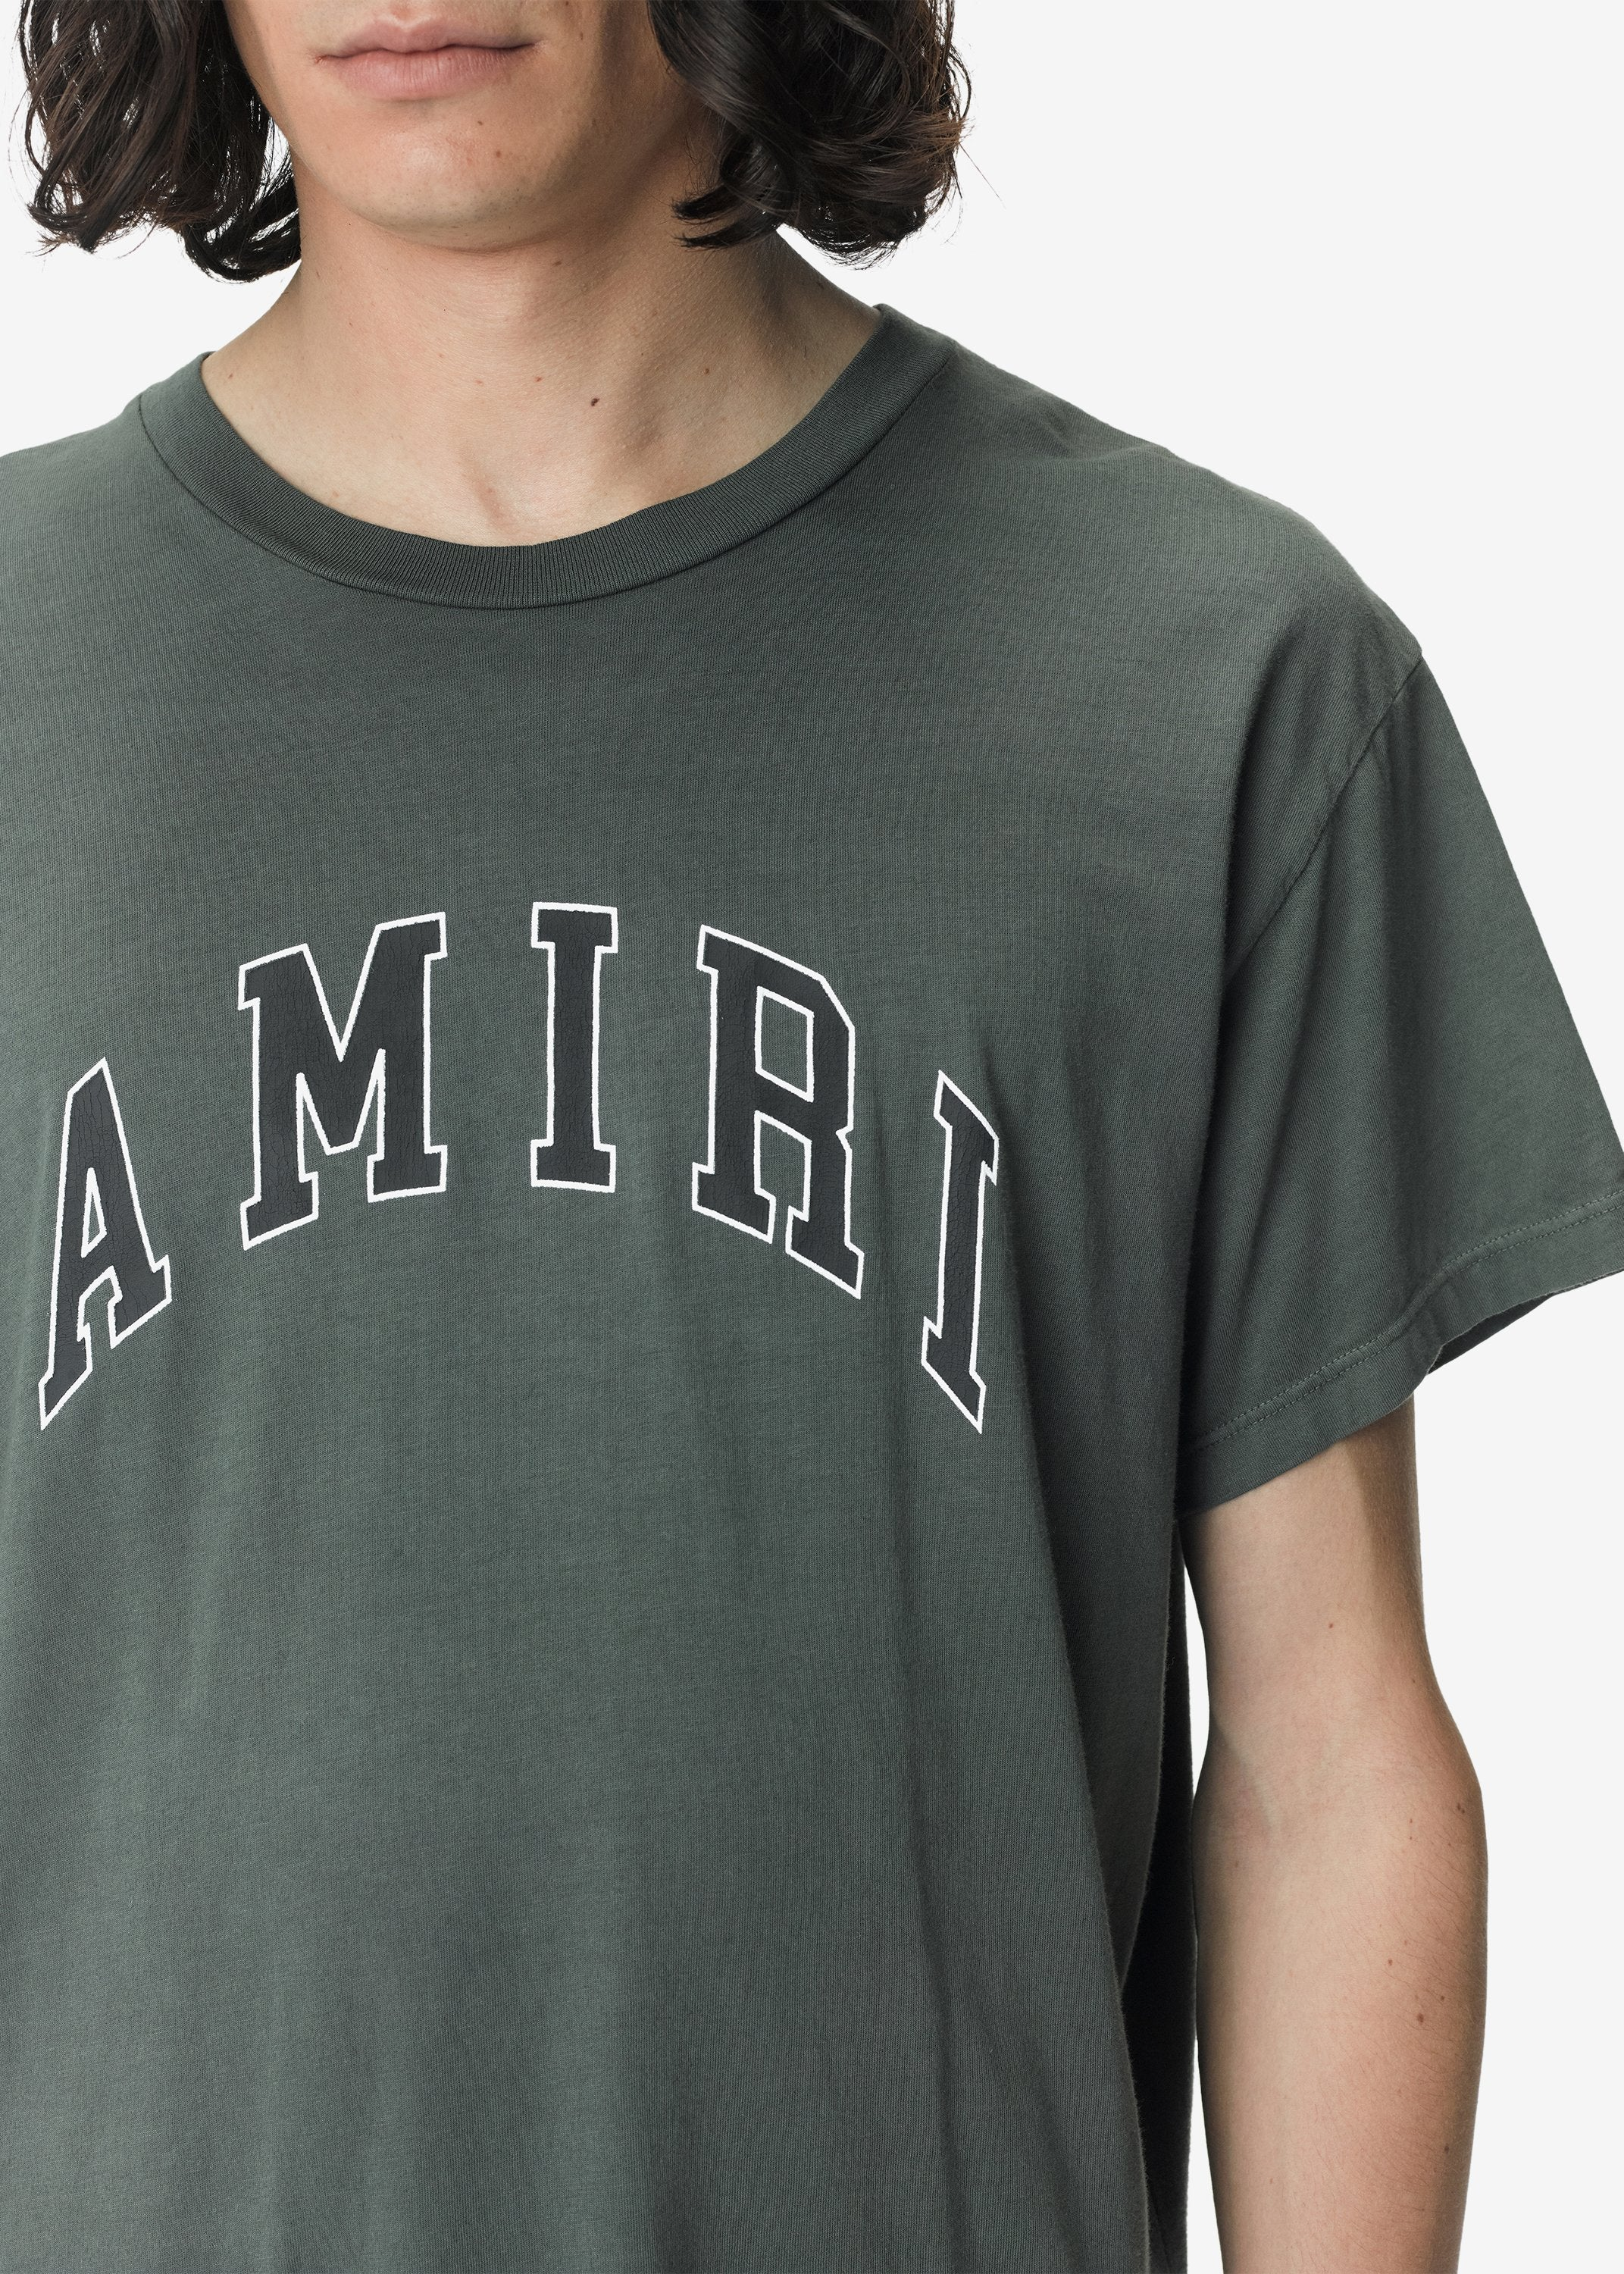 college-amiri-tee-military-green-image-2